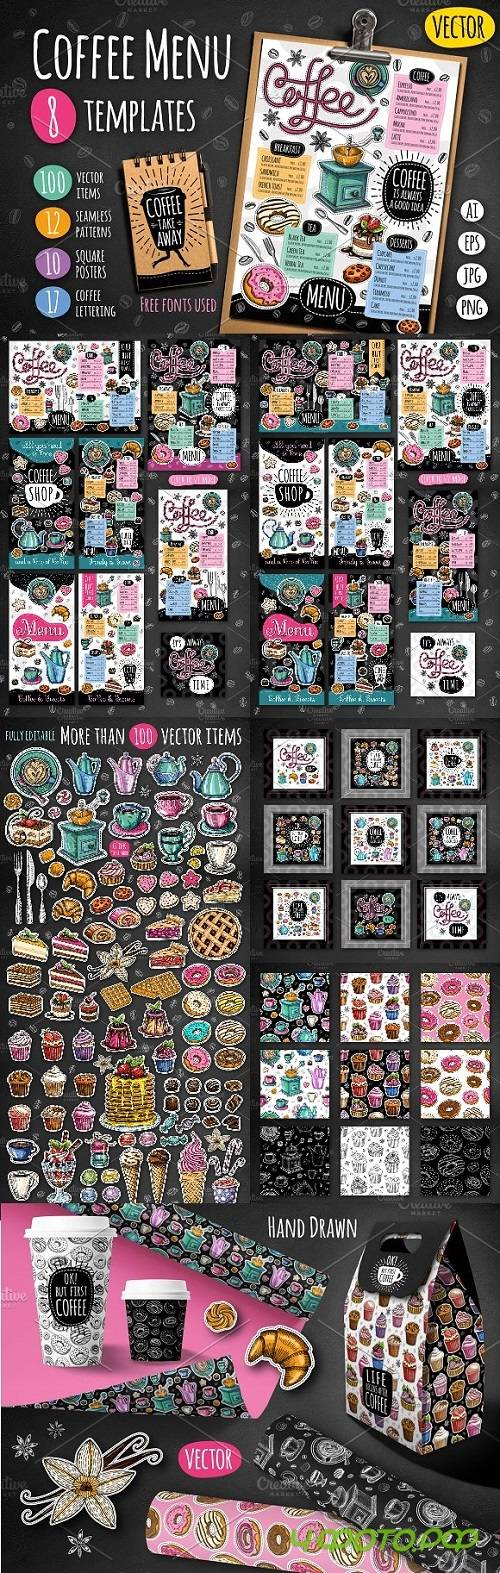 Big Coffee & Sweets Collection - 2141553